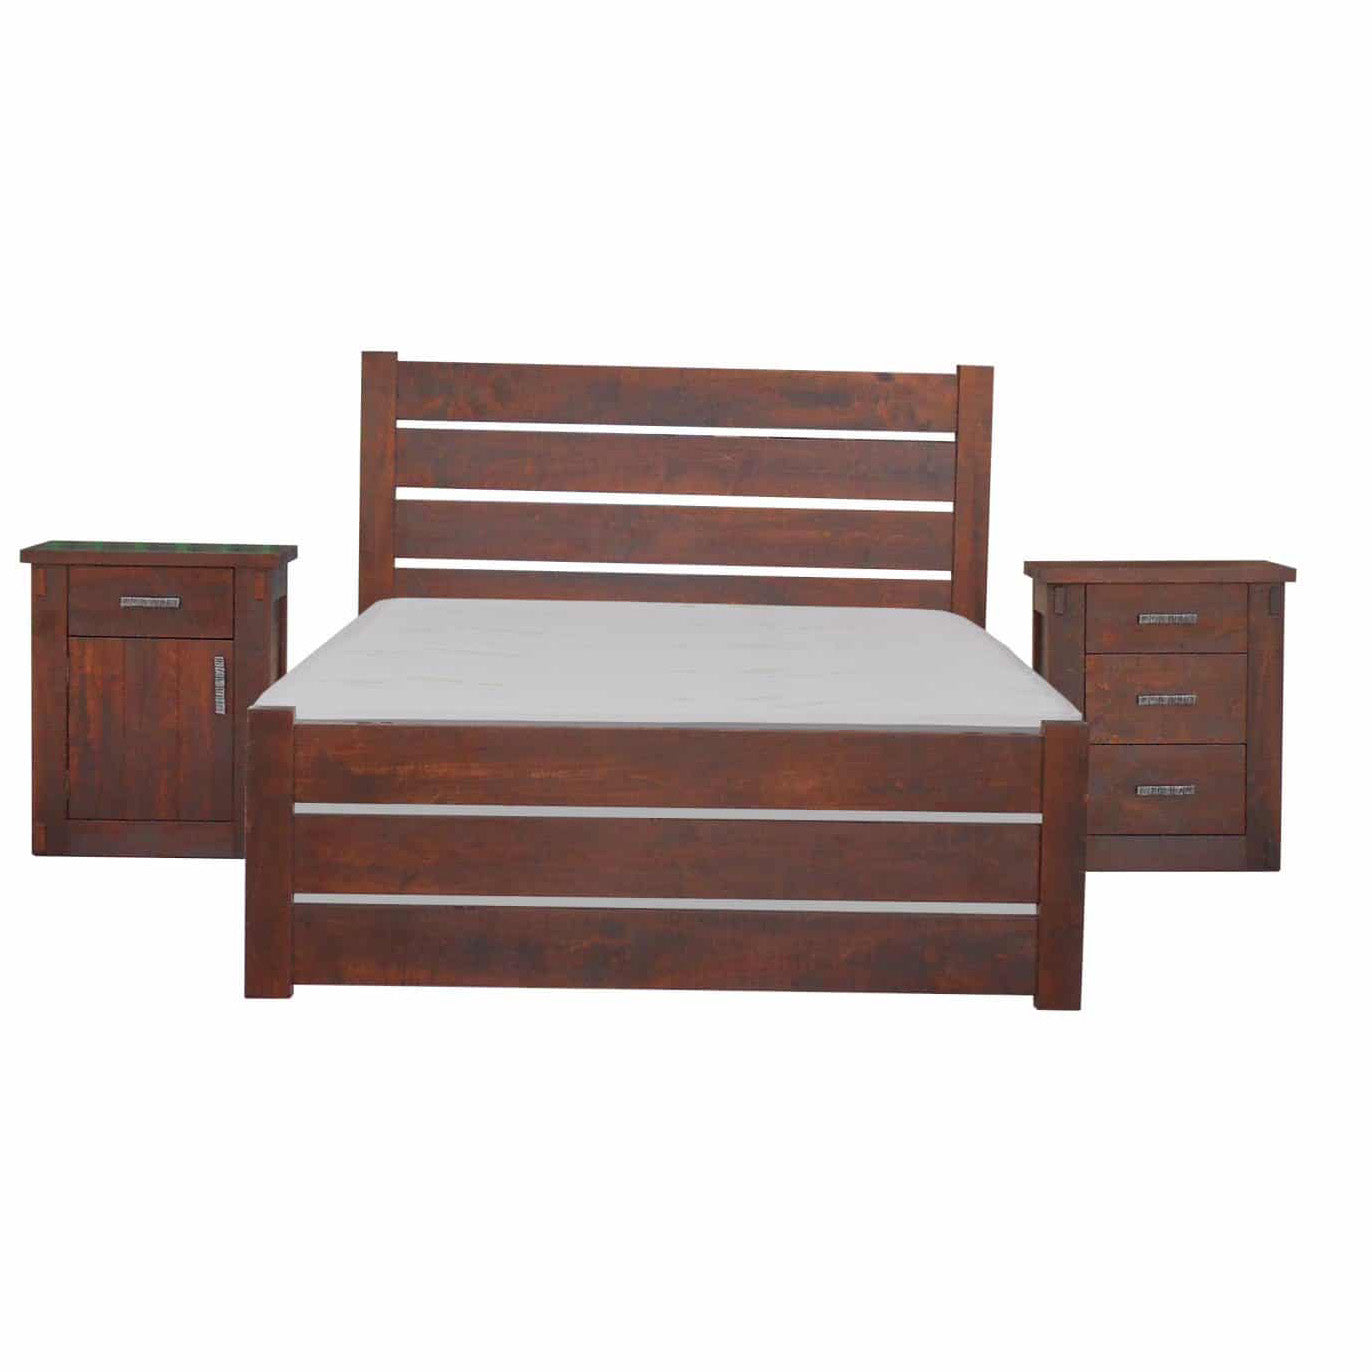 Homestead Bed with matching Nightstands